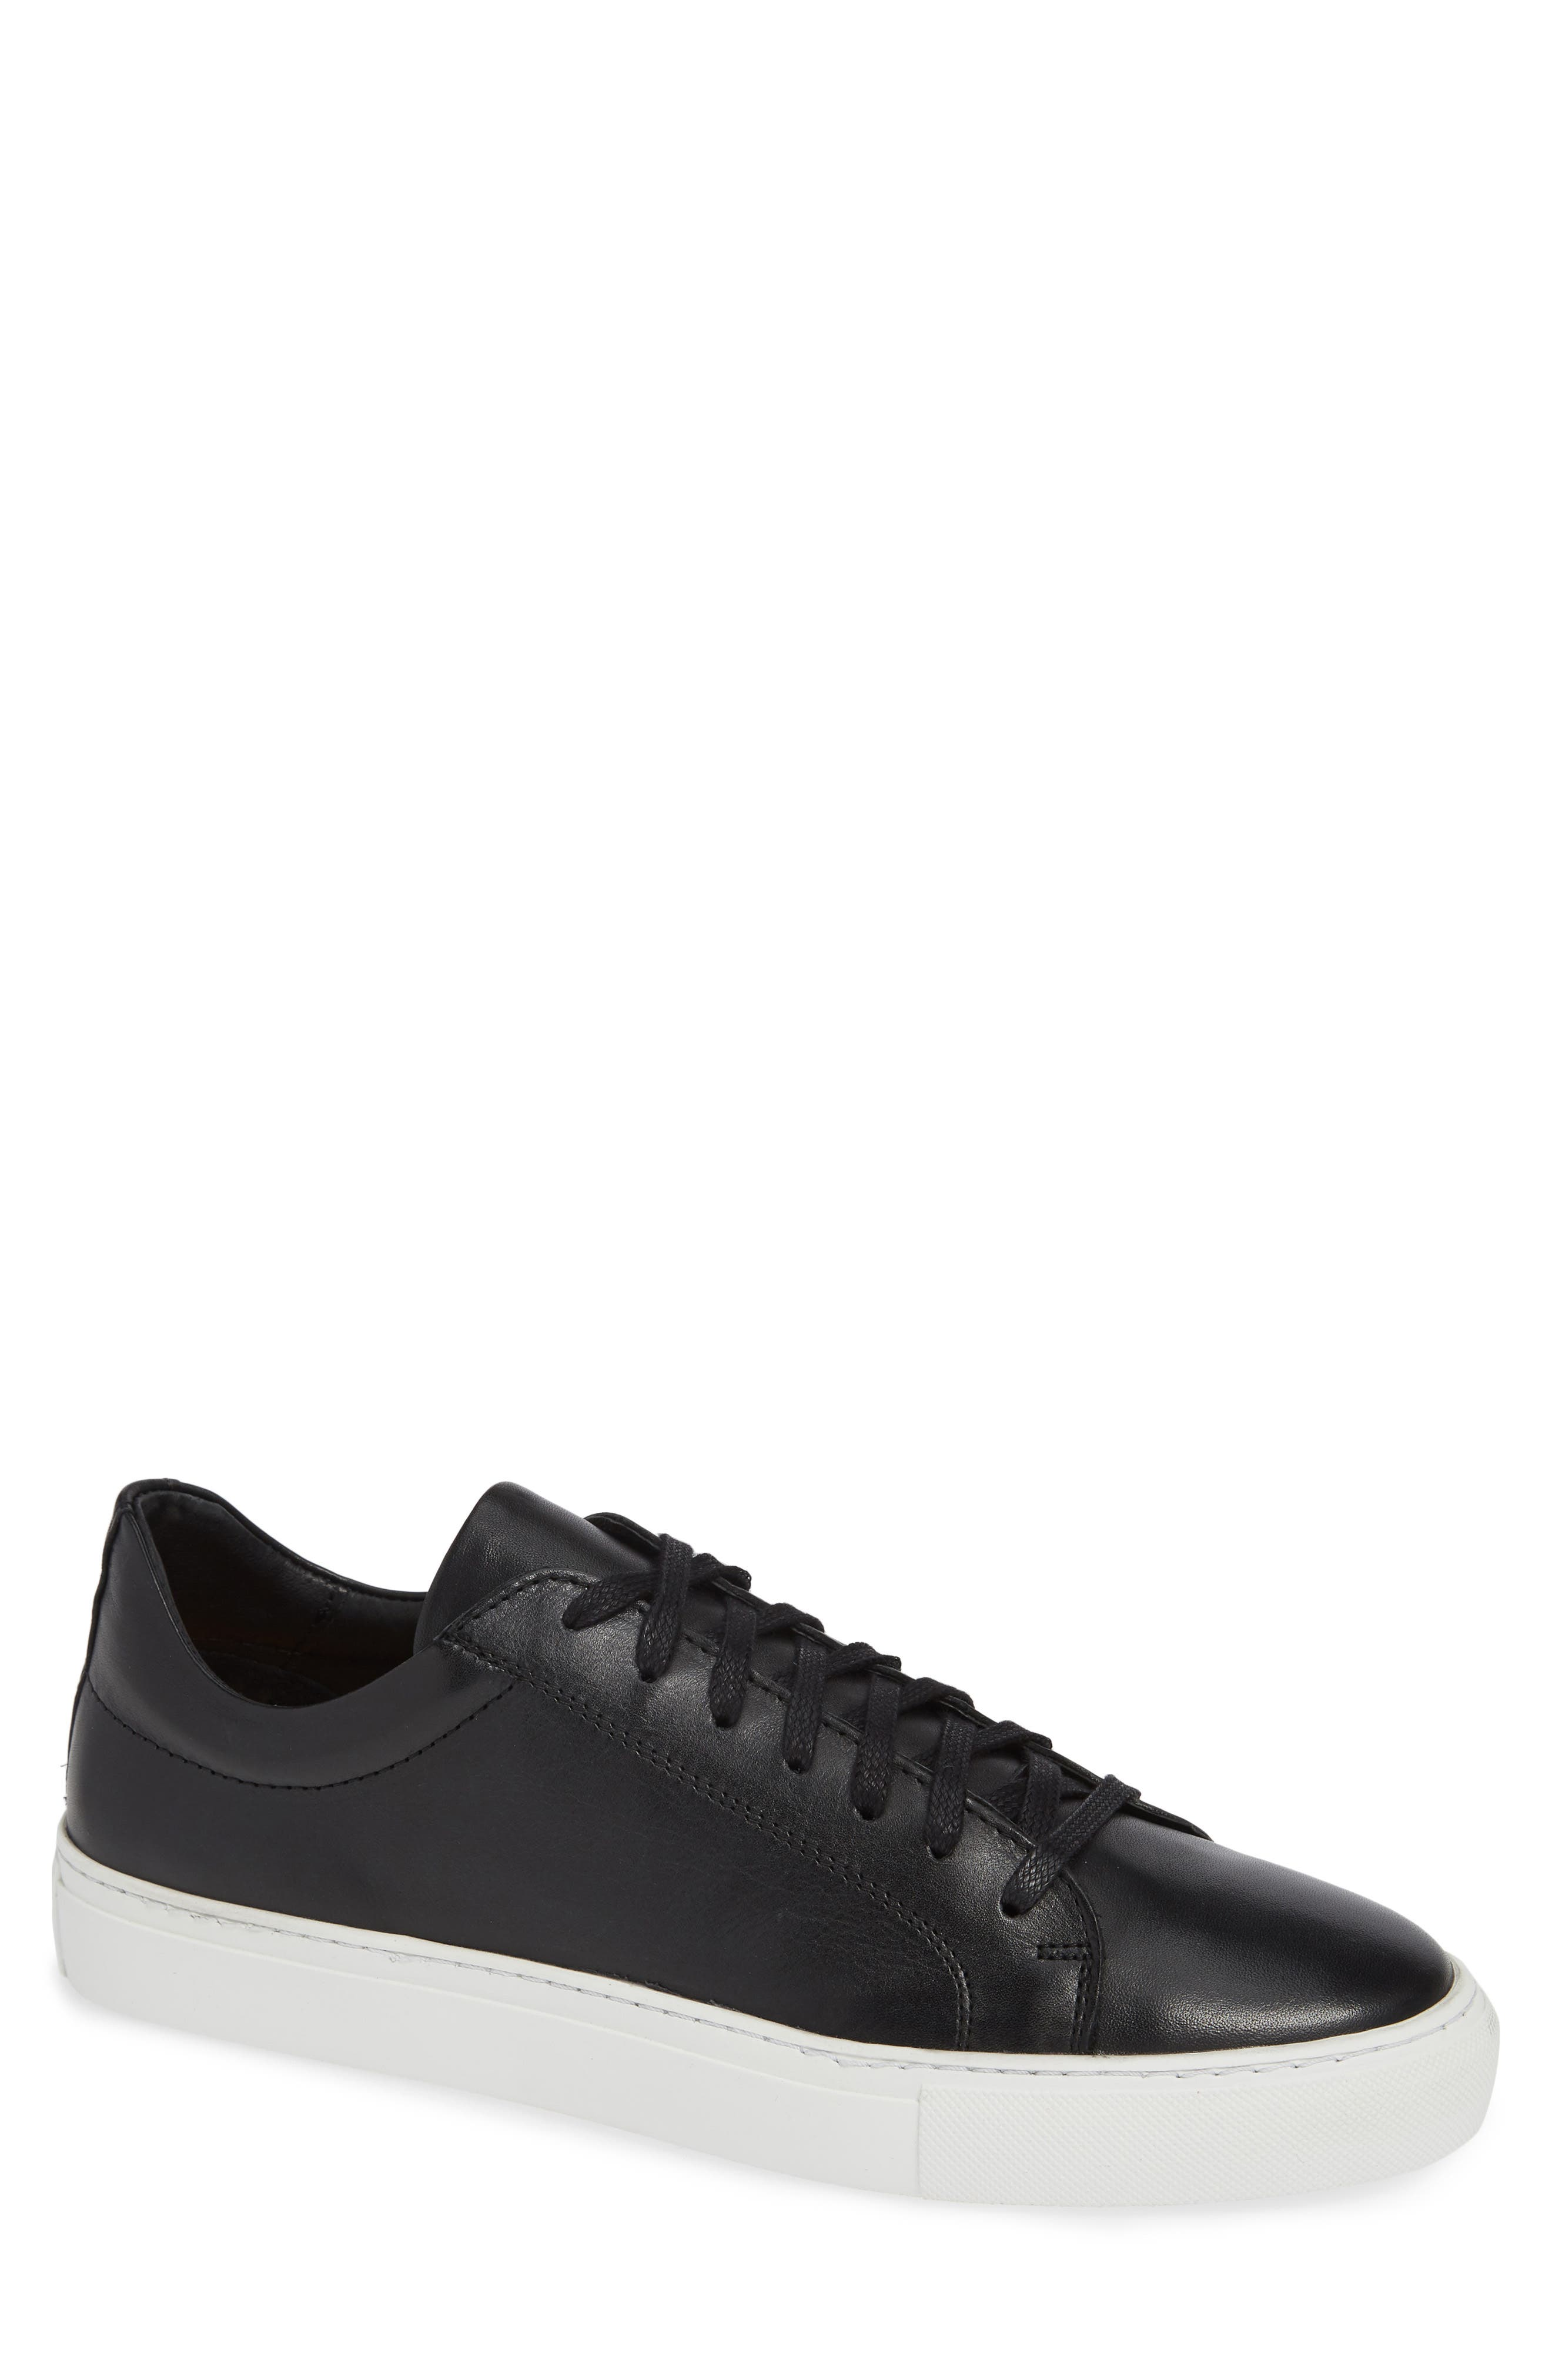 Damian Lace-Up Sneaker,                             Main thumbnail 1, color,                             001